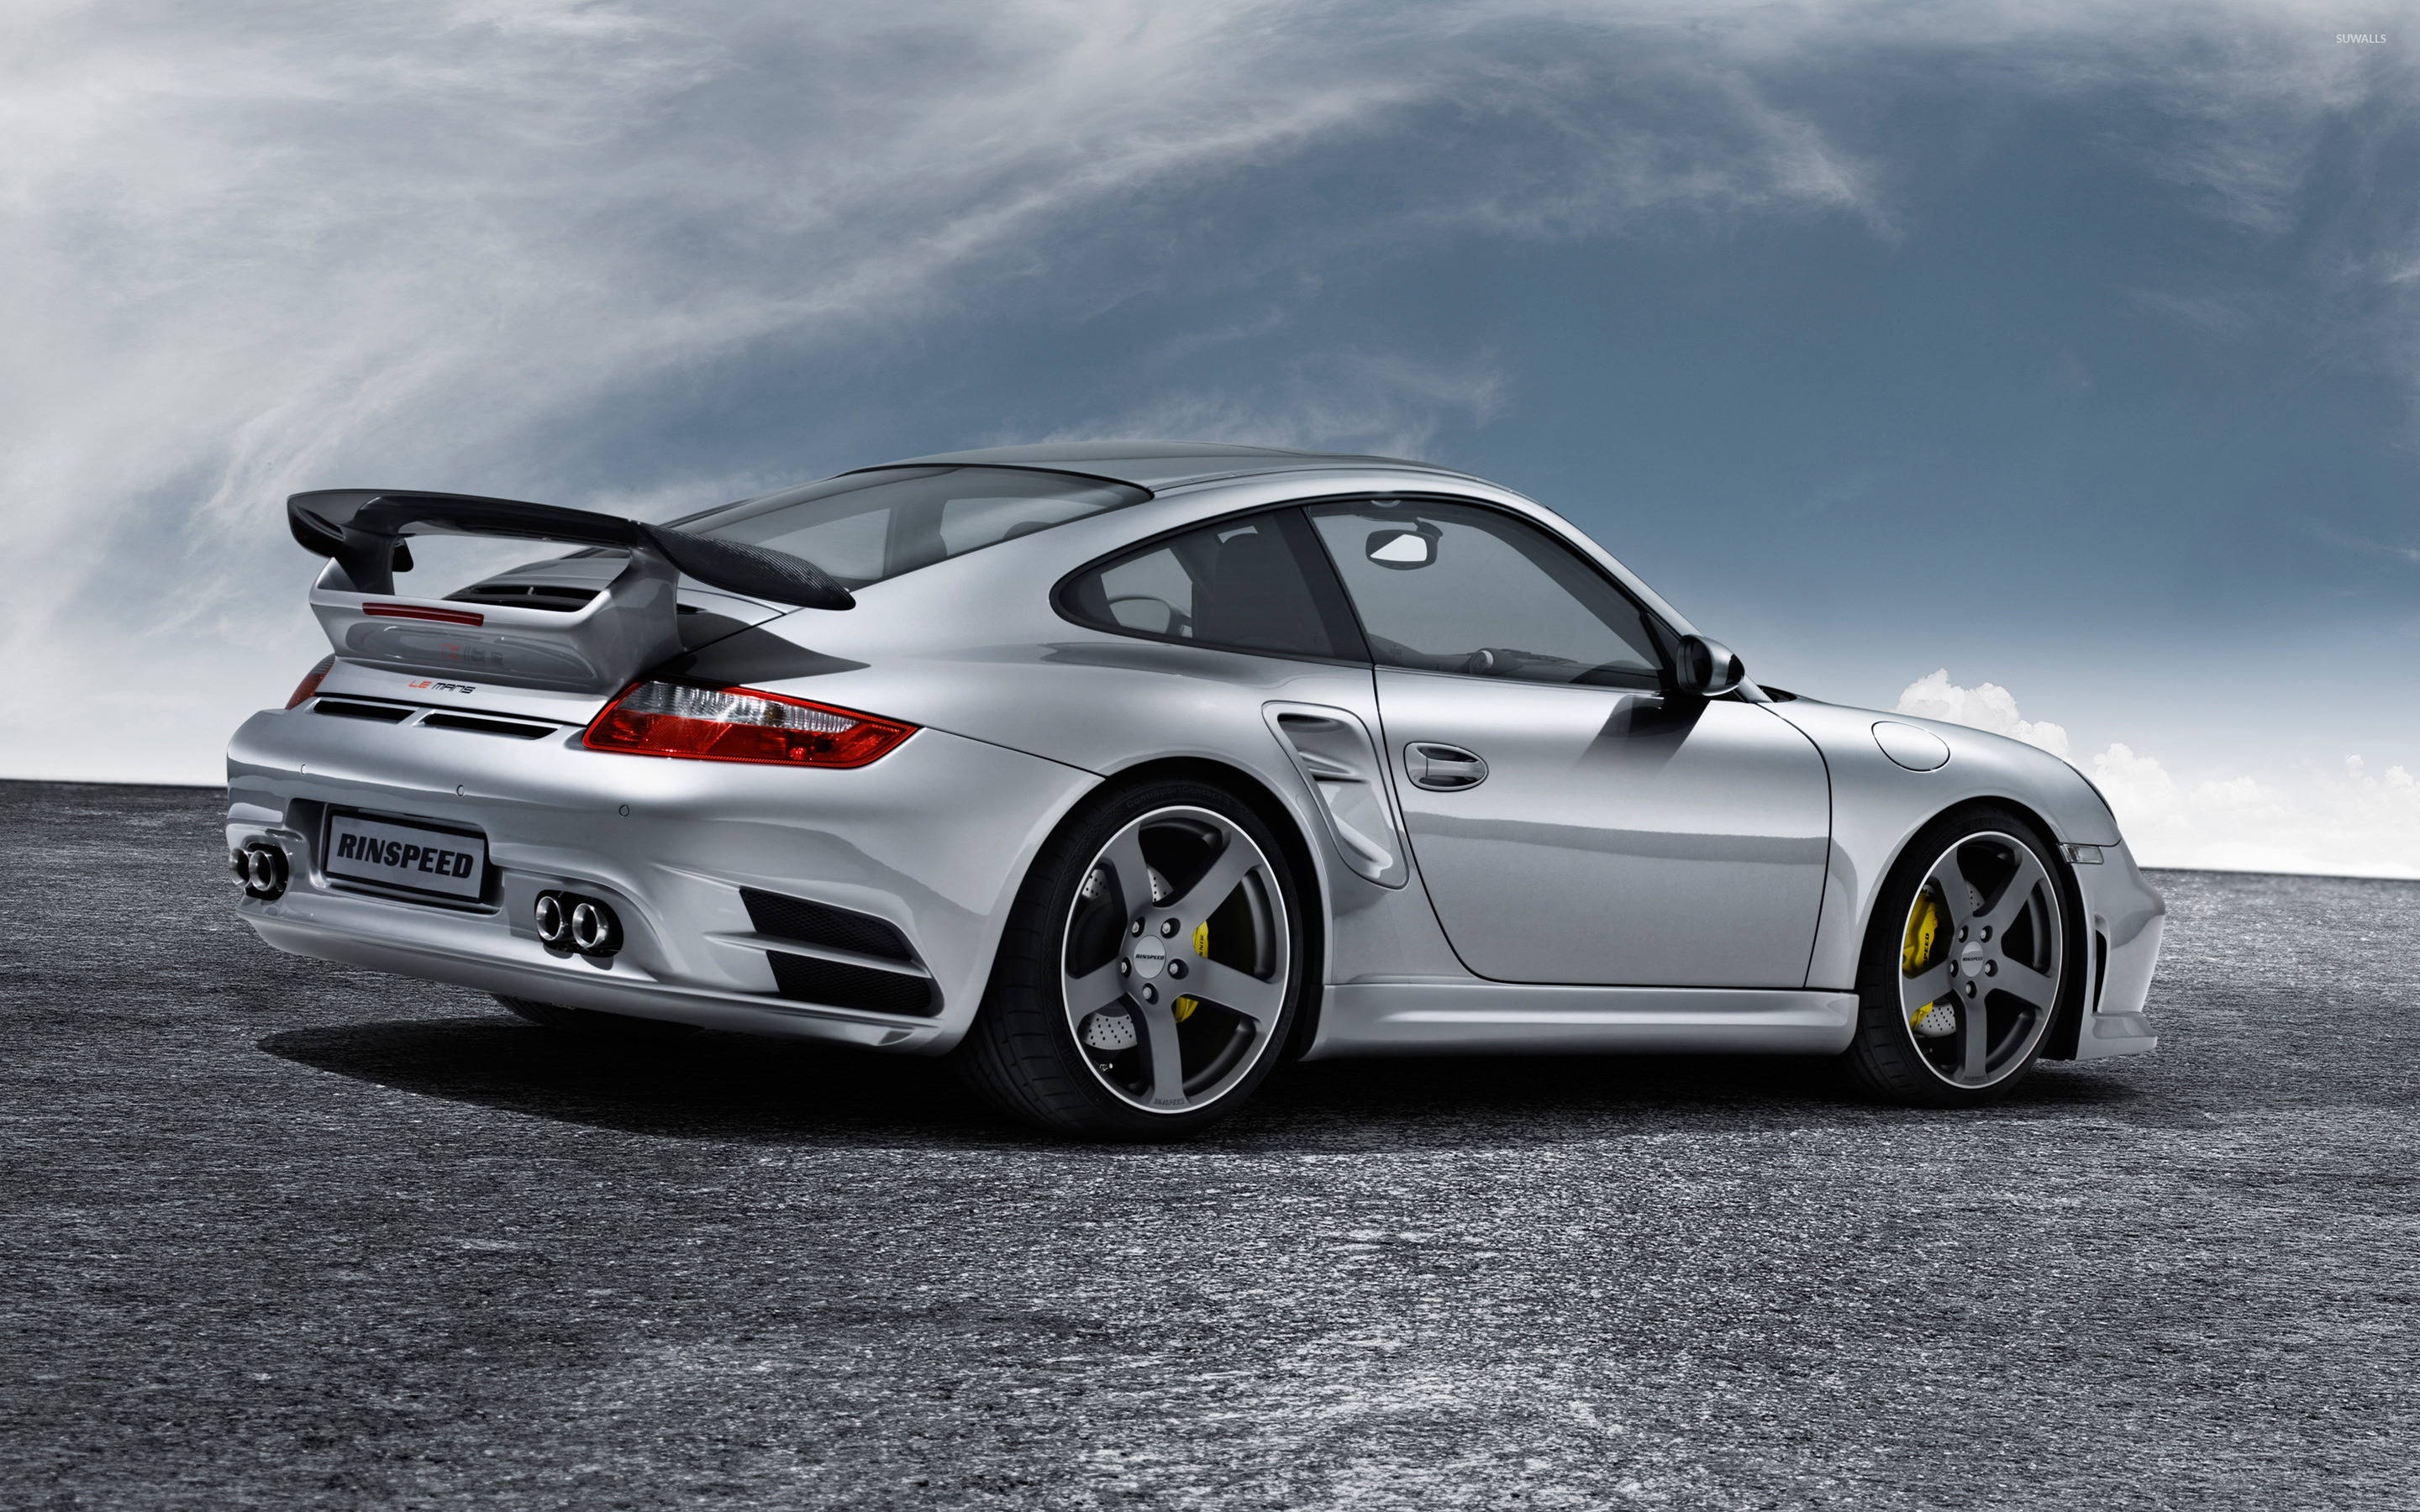 porsche 997 turbo rinspeed 2 wallpaper car wallpapers 17480. Black Bedroom Furniture Sets. Home Design Ideas